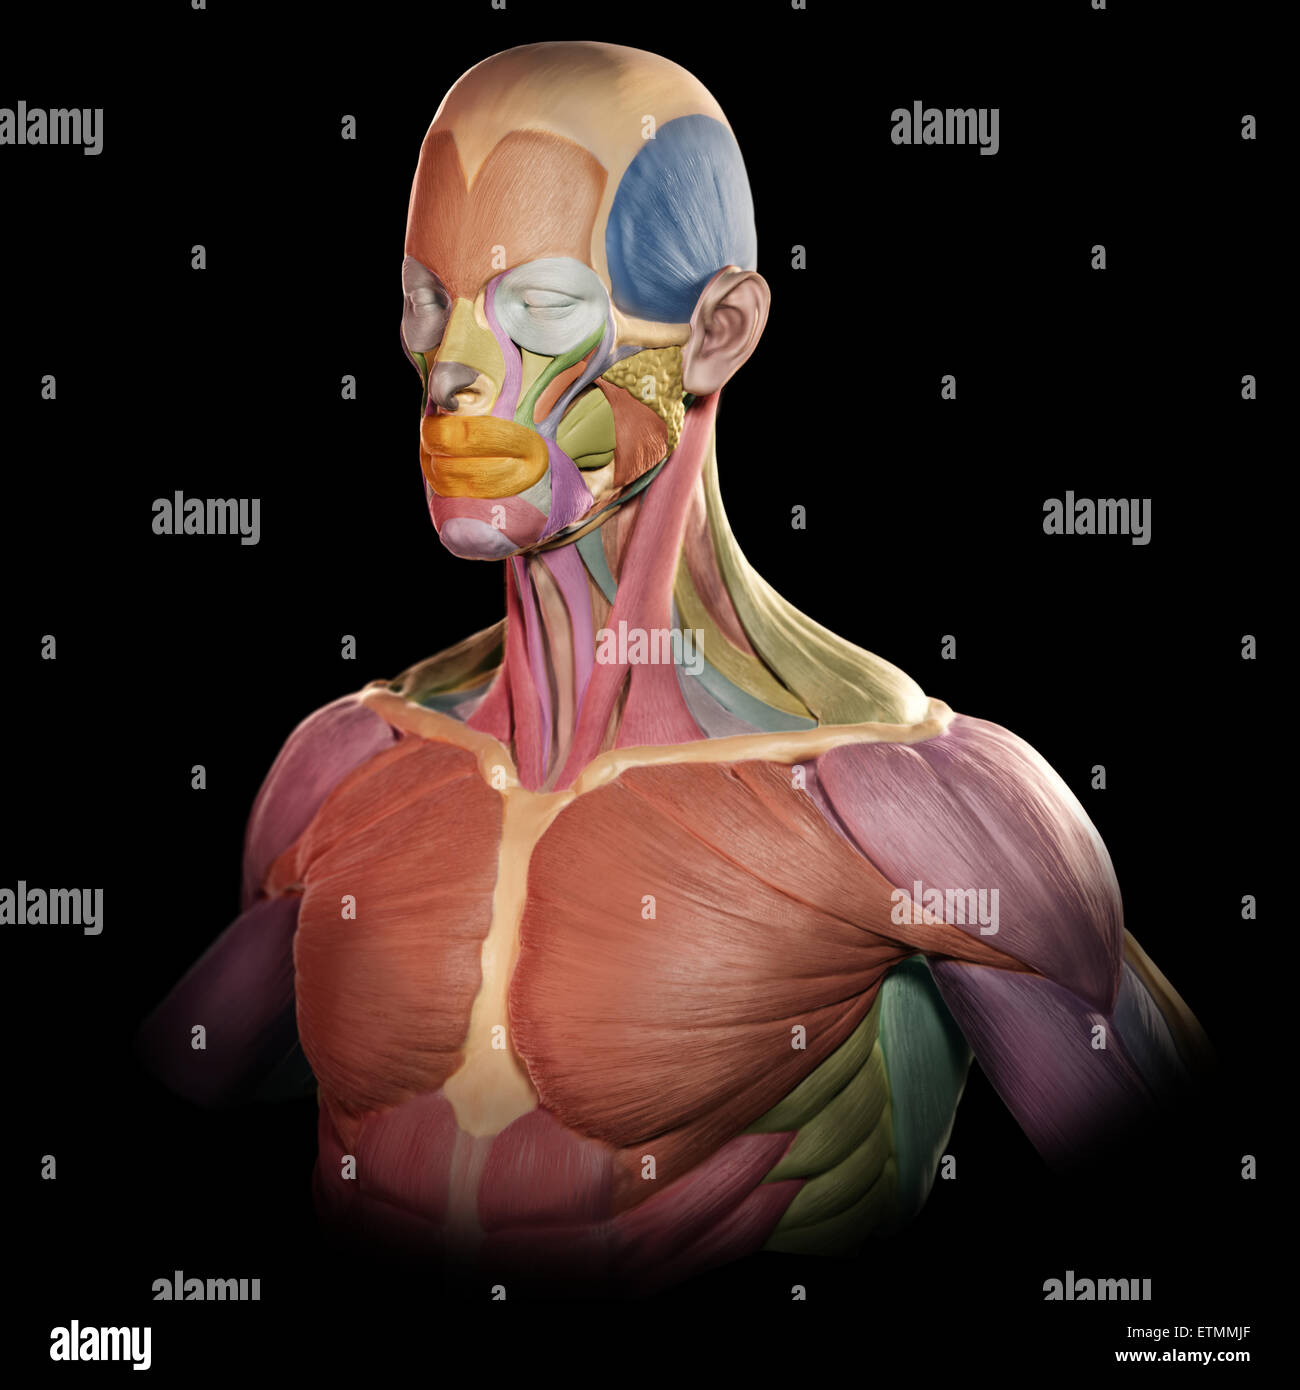 Stylized Image Of The Muscles Of The Face And Upper Body In The